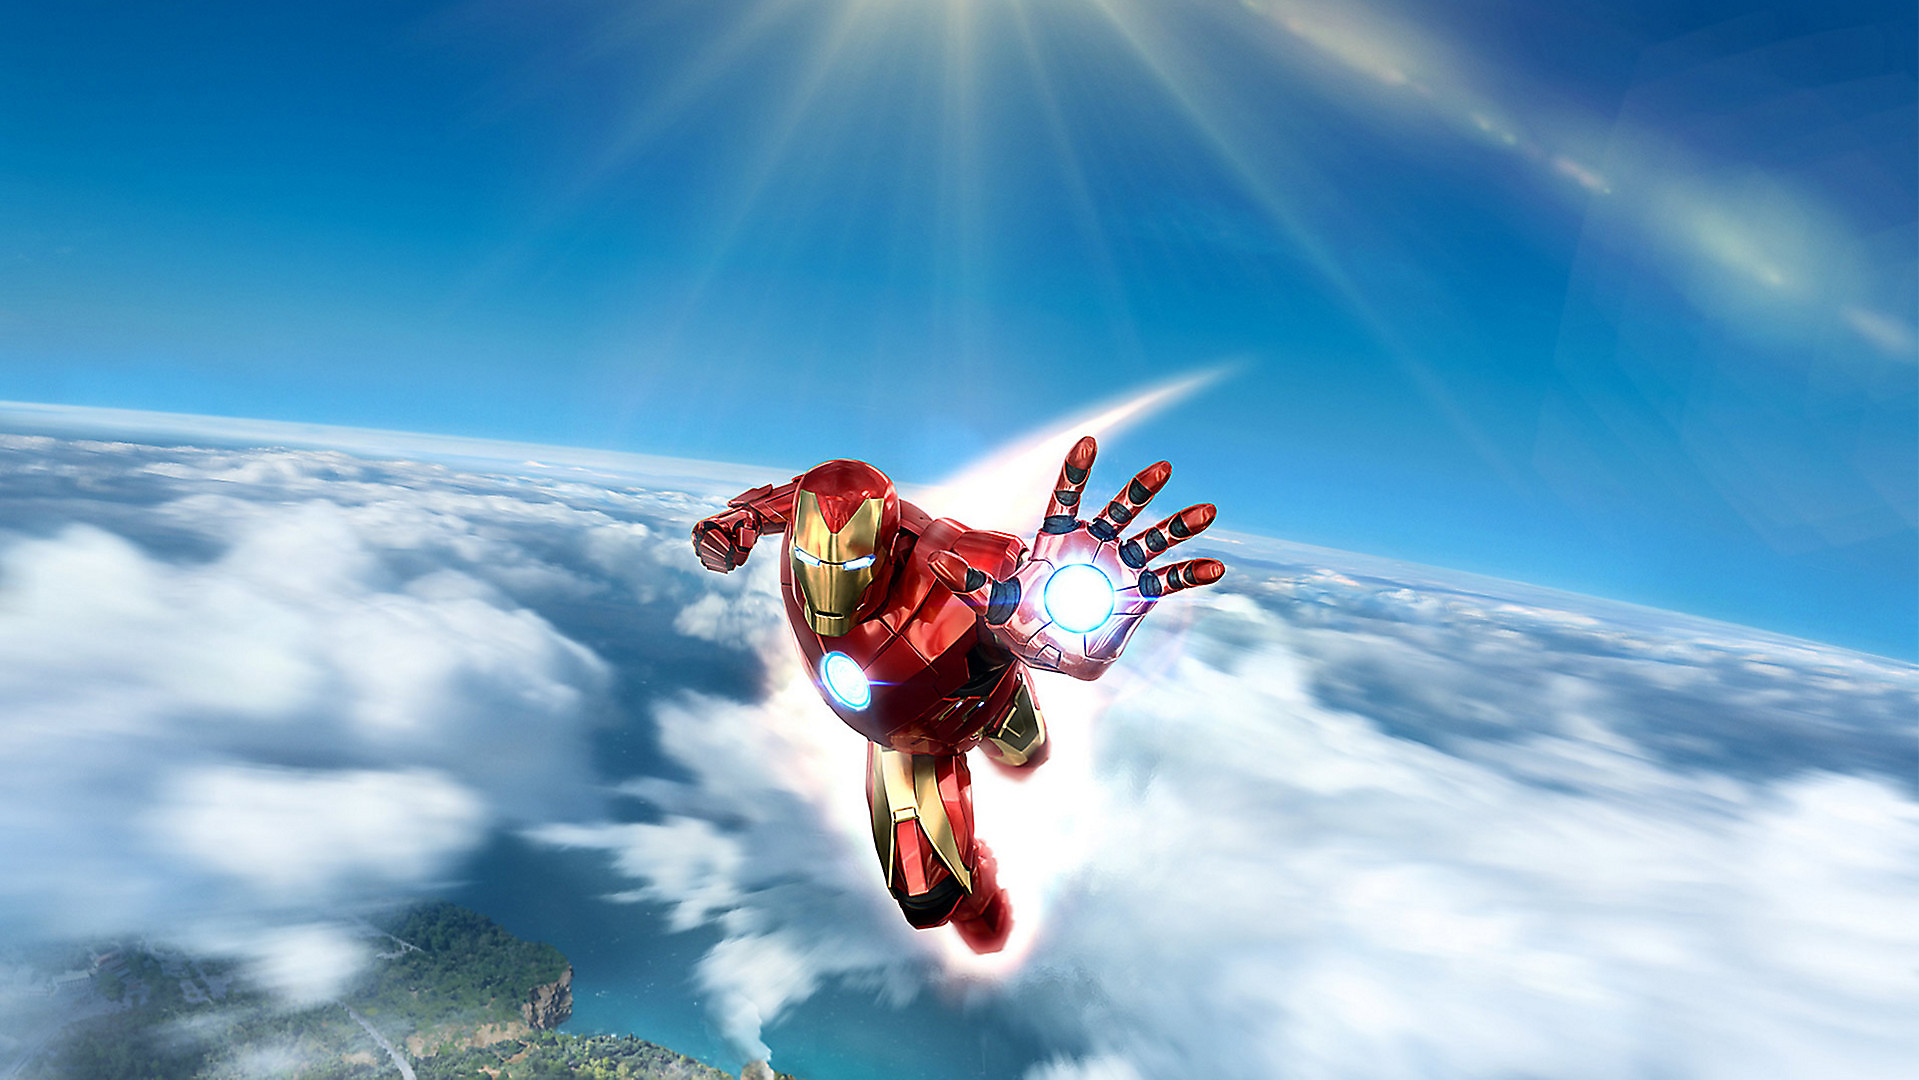 Key art of Iron Man flying above the clouds from Marvel's Iron Man VR